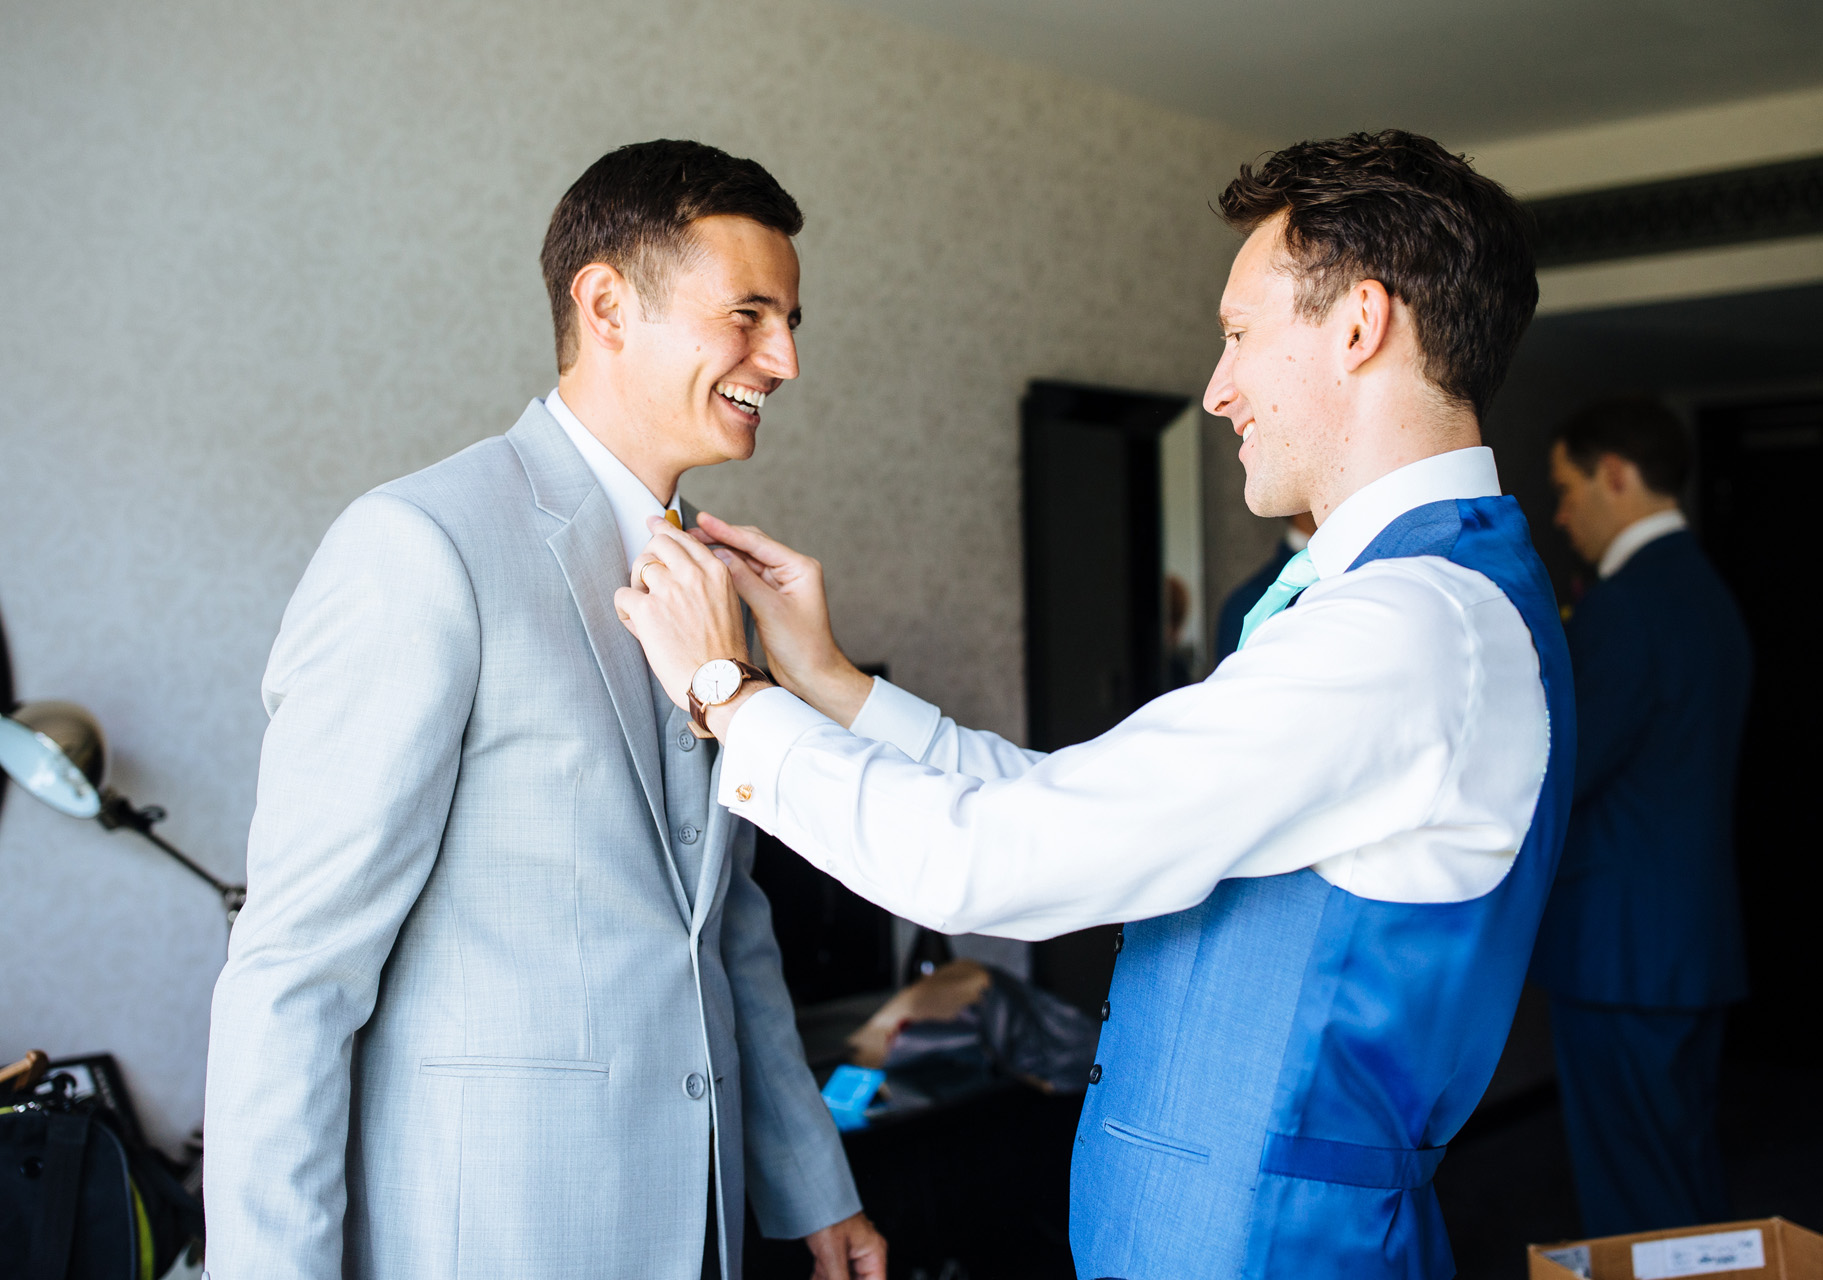 groom laughing at groomsman helping him with his tie